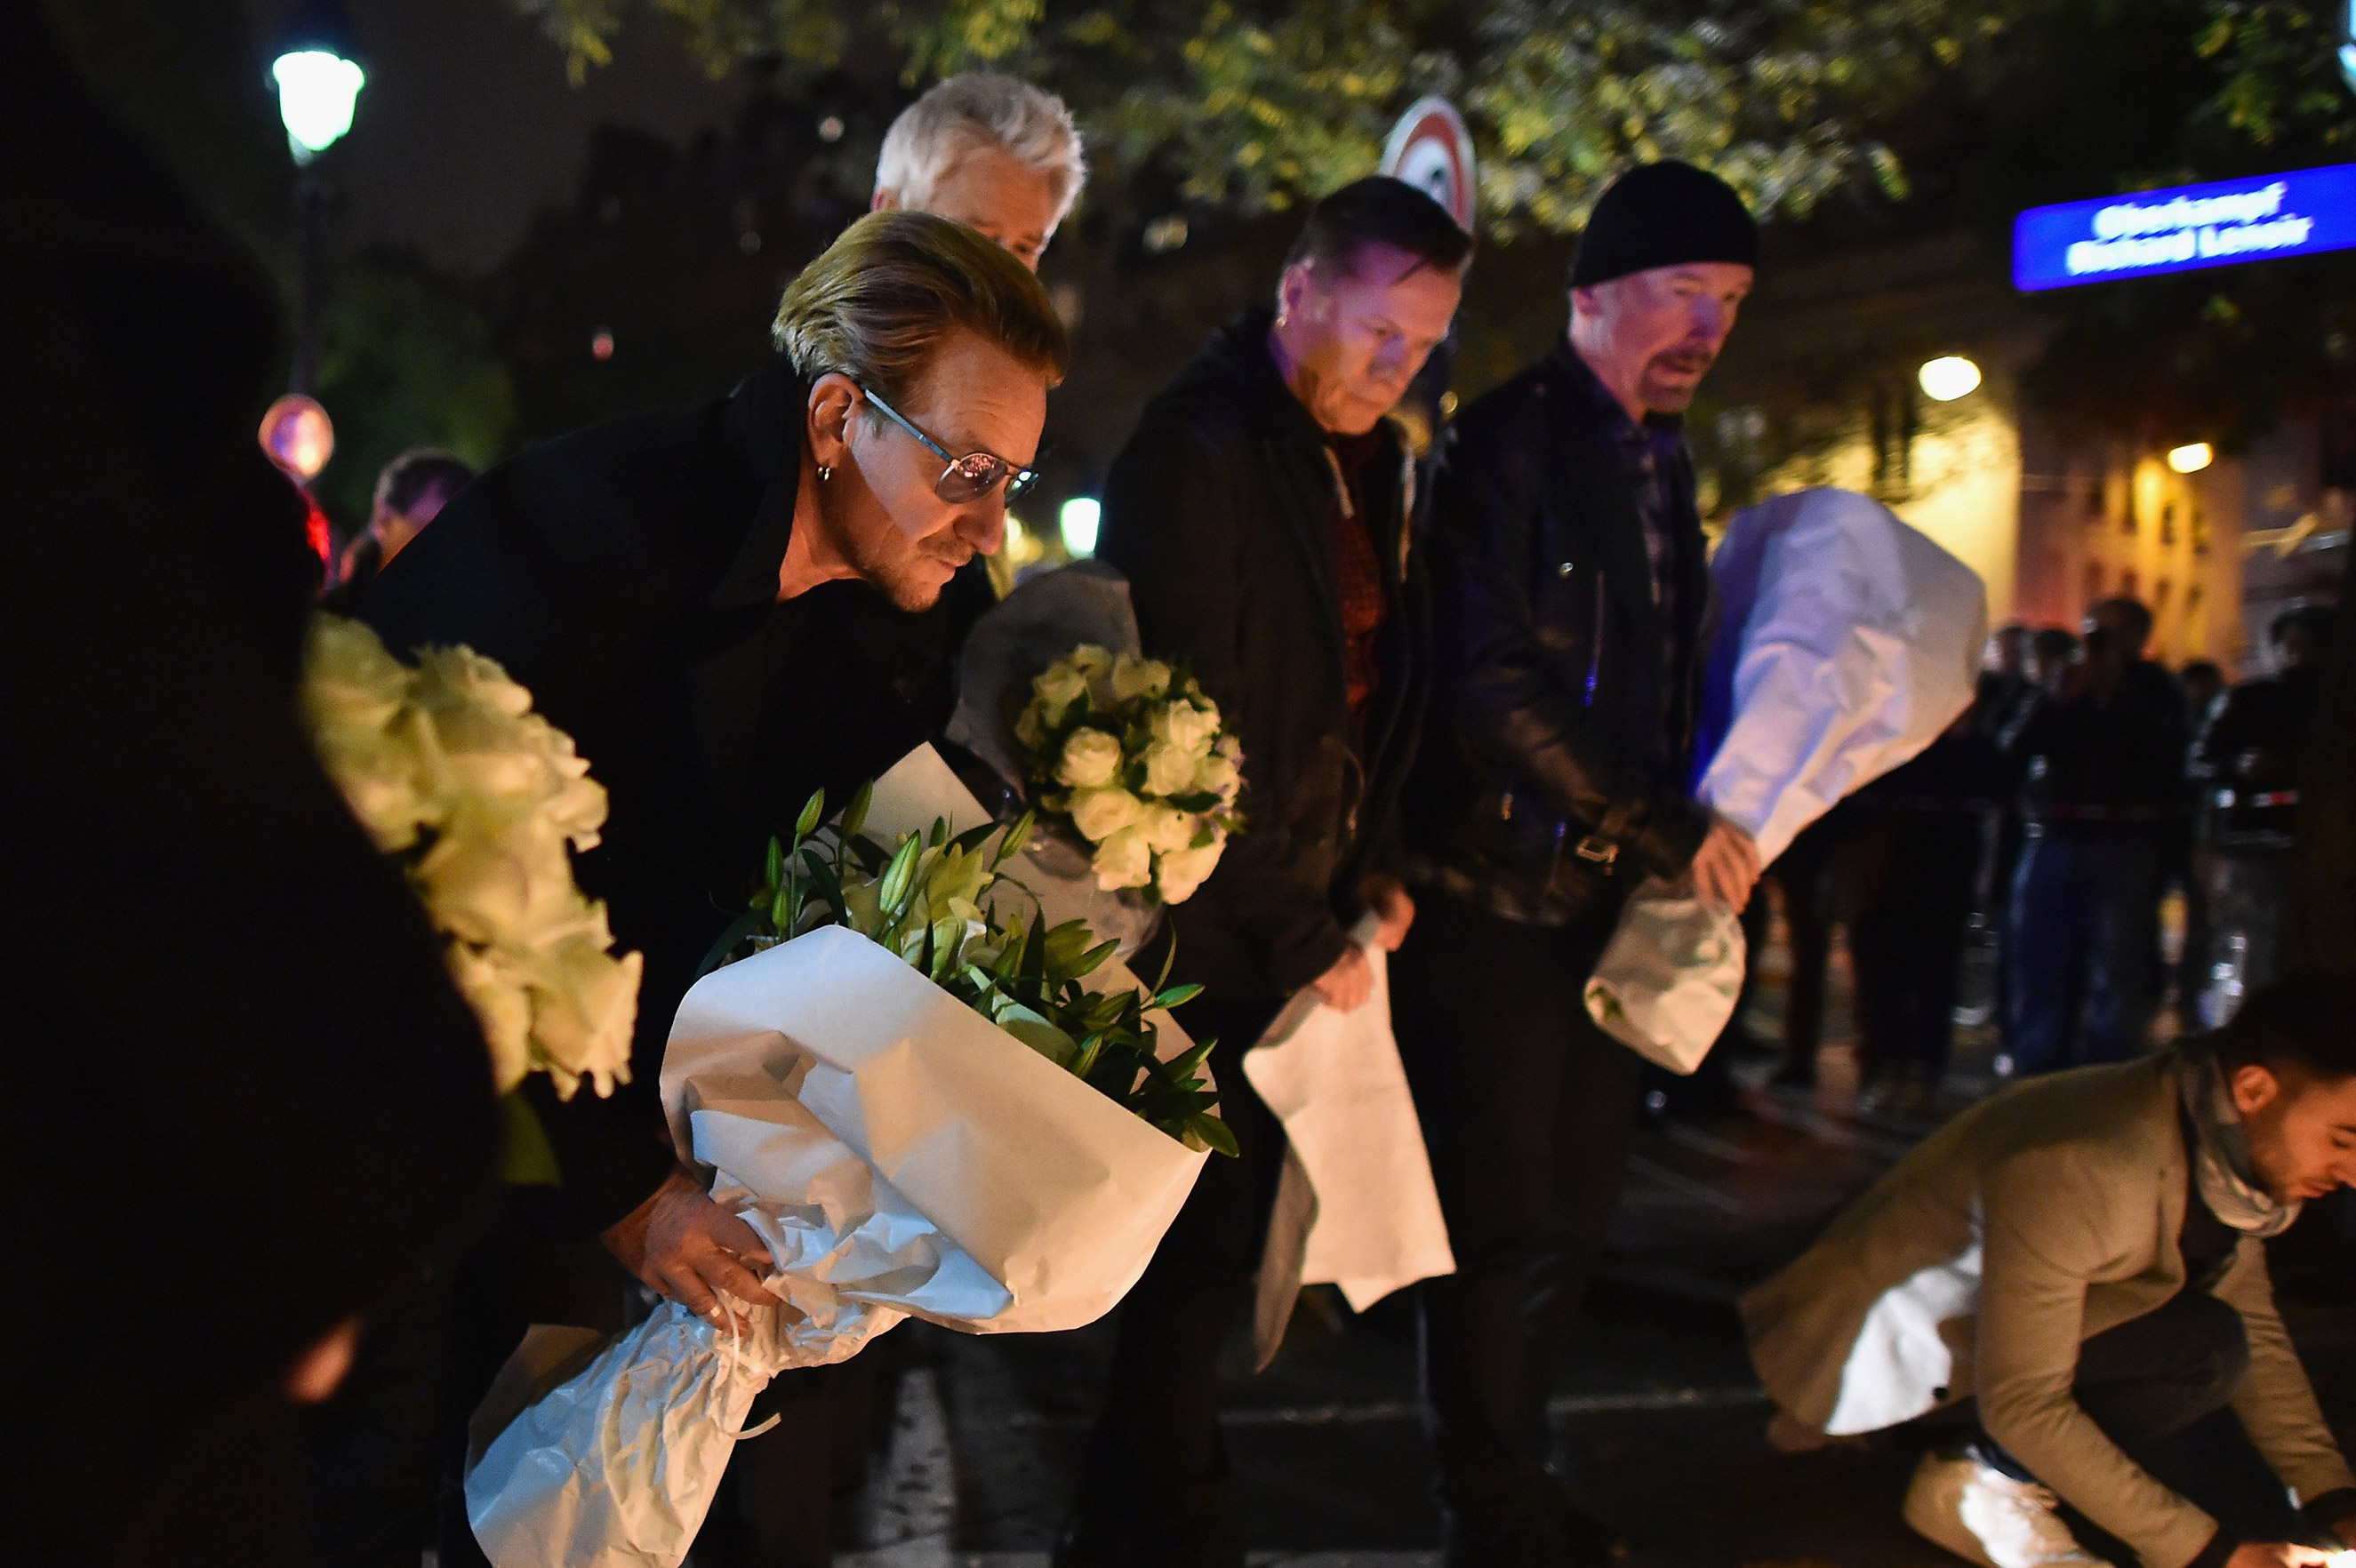 Bono and band members from the band U2 place flowers on the pavement near the scene of yesterday's Bataclan Theatre terrorist attack on Nov. 14, 2015 in Paris.